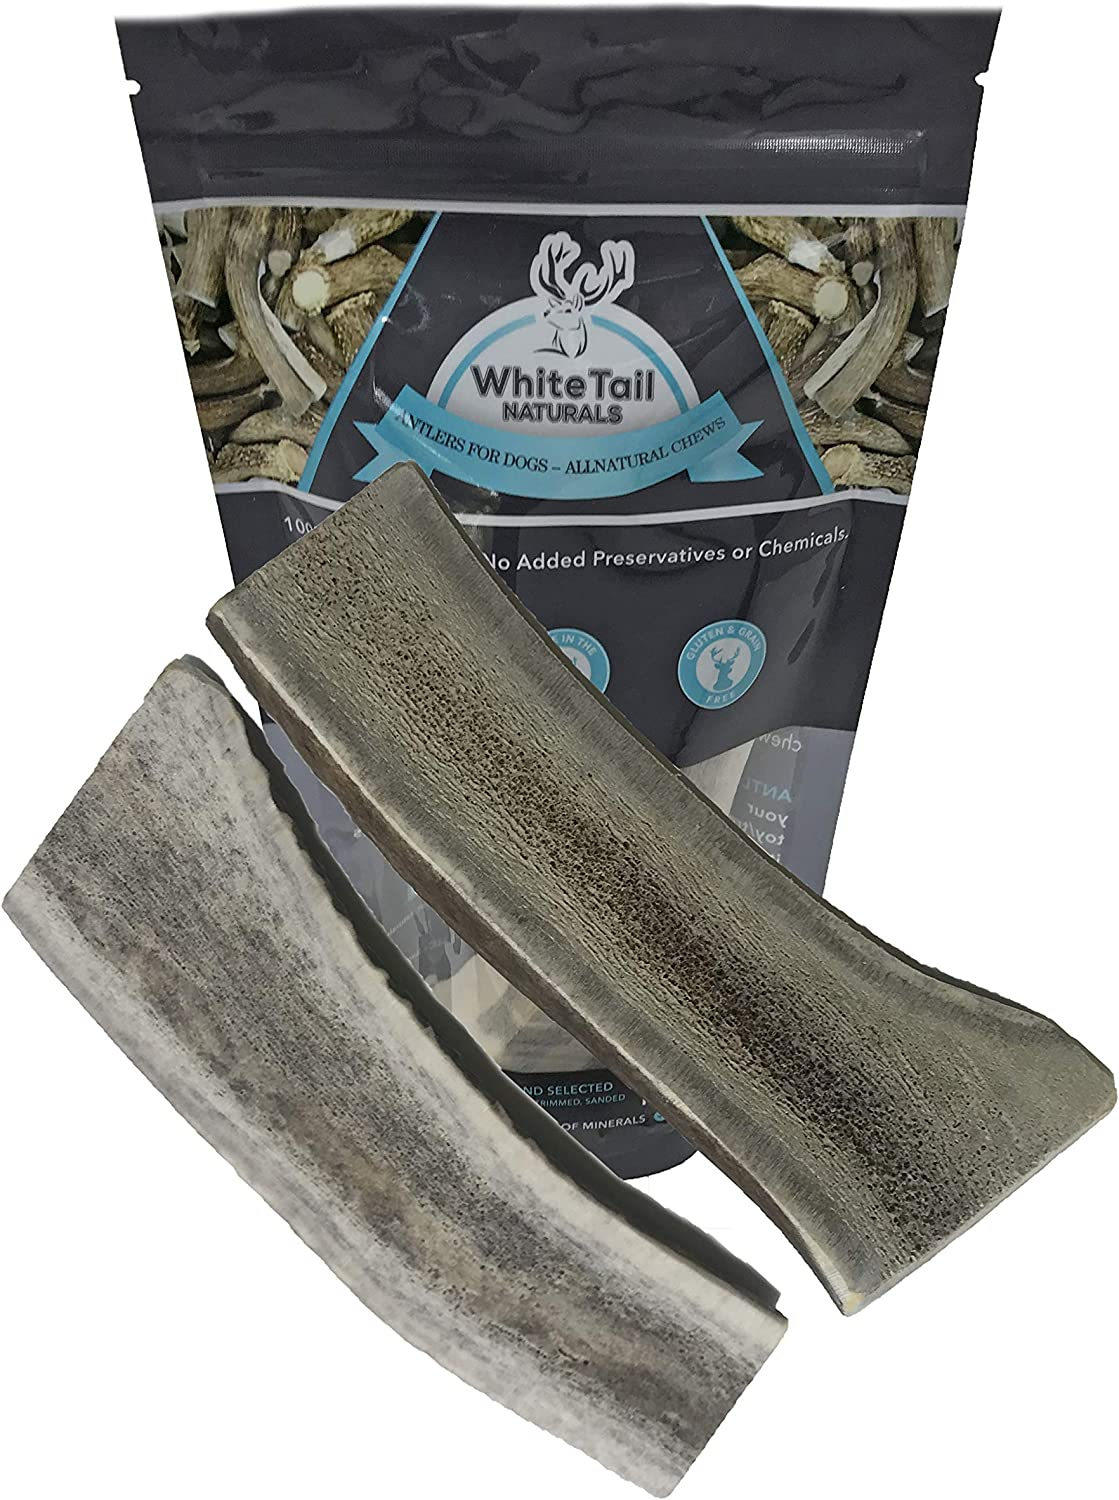 WhiteTail Naturals Premium Split Elk Antlers for Dogs 2 Pack Large All Natural Dog Chews Naturally Shed, Large Antler Horn Chew Toy